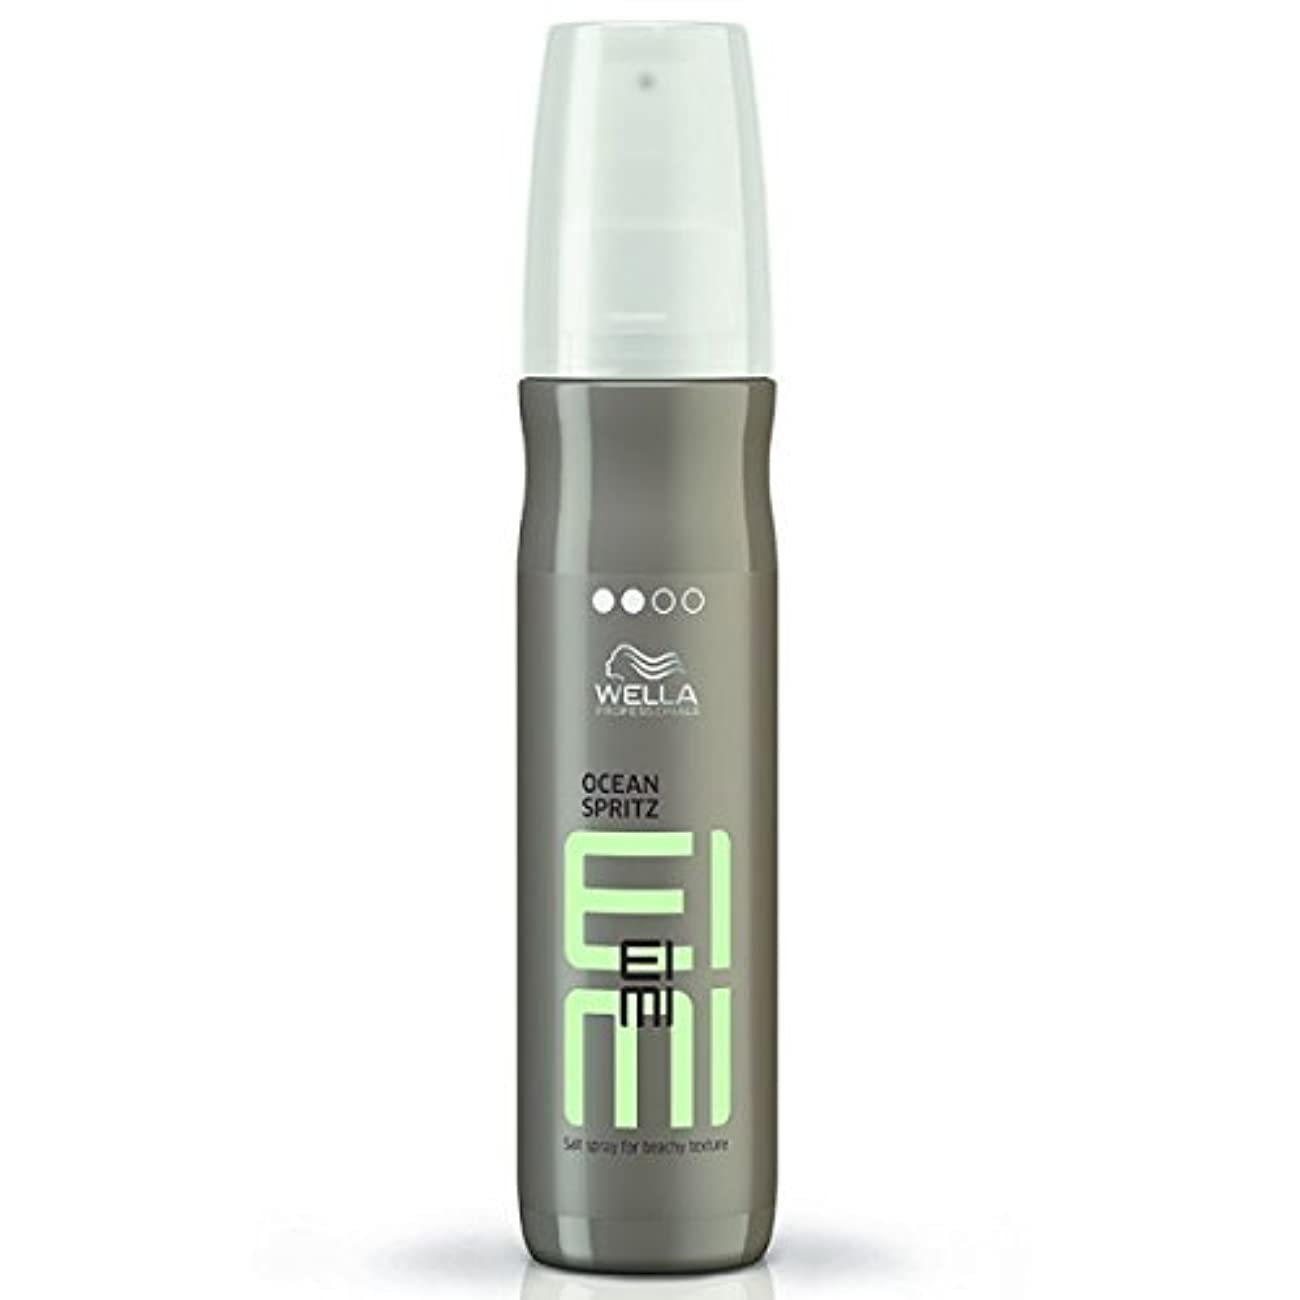 力強い金銭的なインスタンスWella EIMI Ocean Spritz - Salt Spray For Beachy Hair Texture 150 ml [並行輸入品]